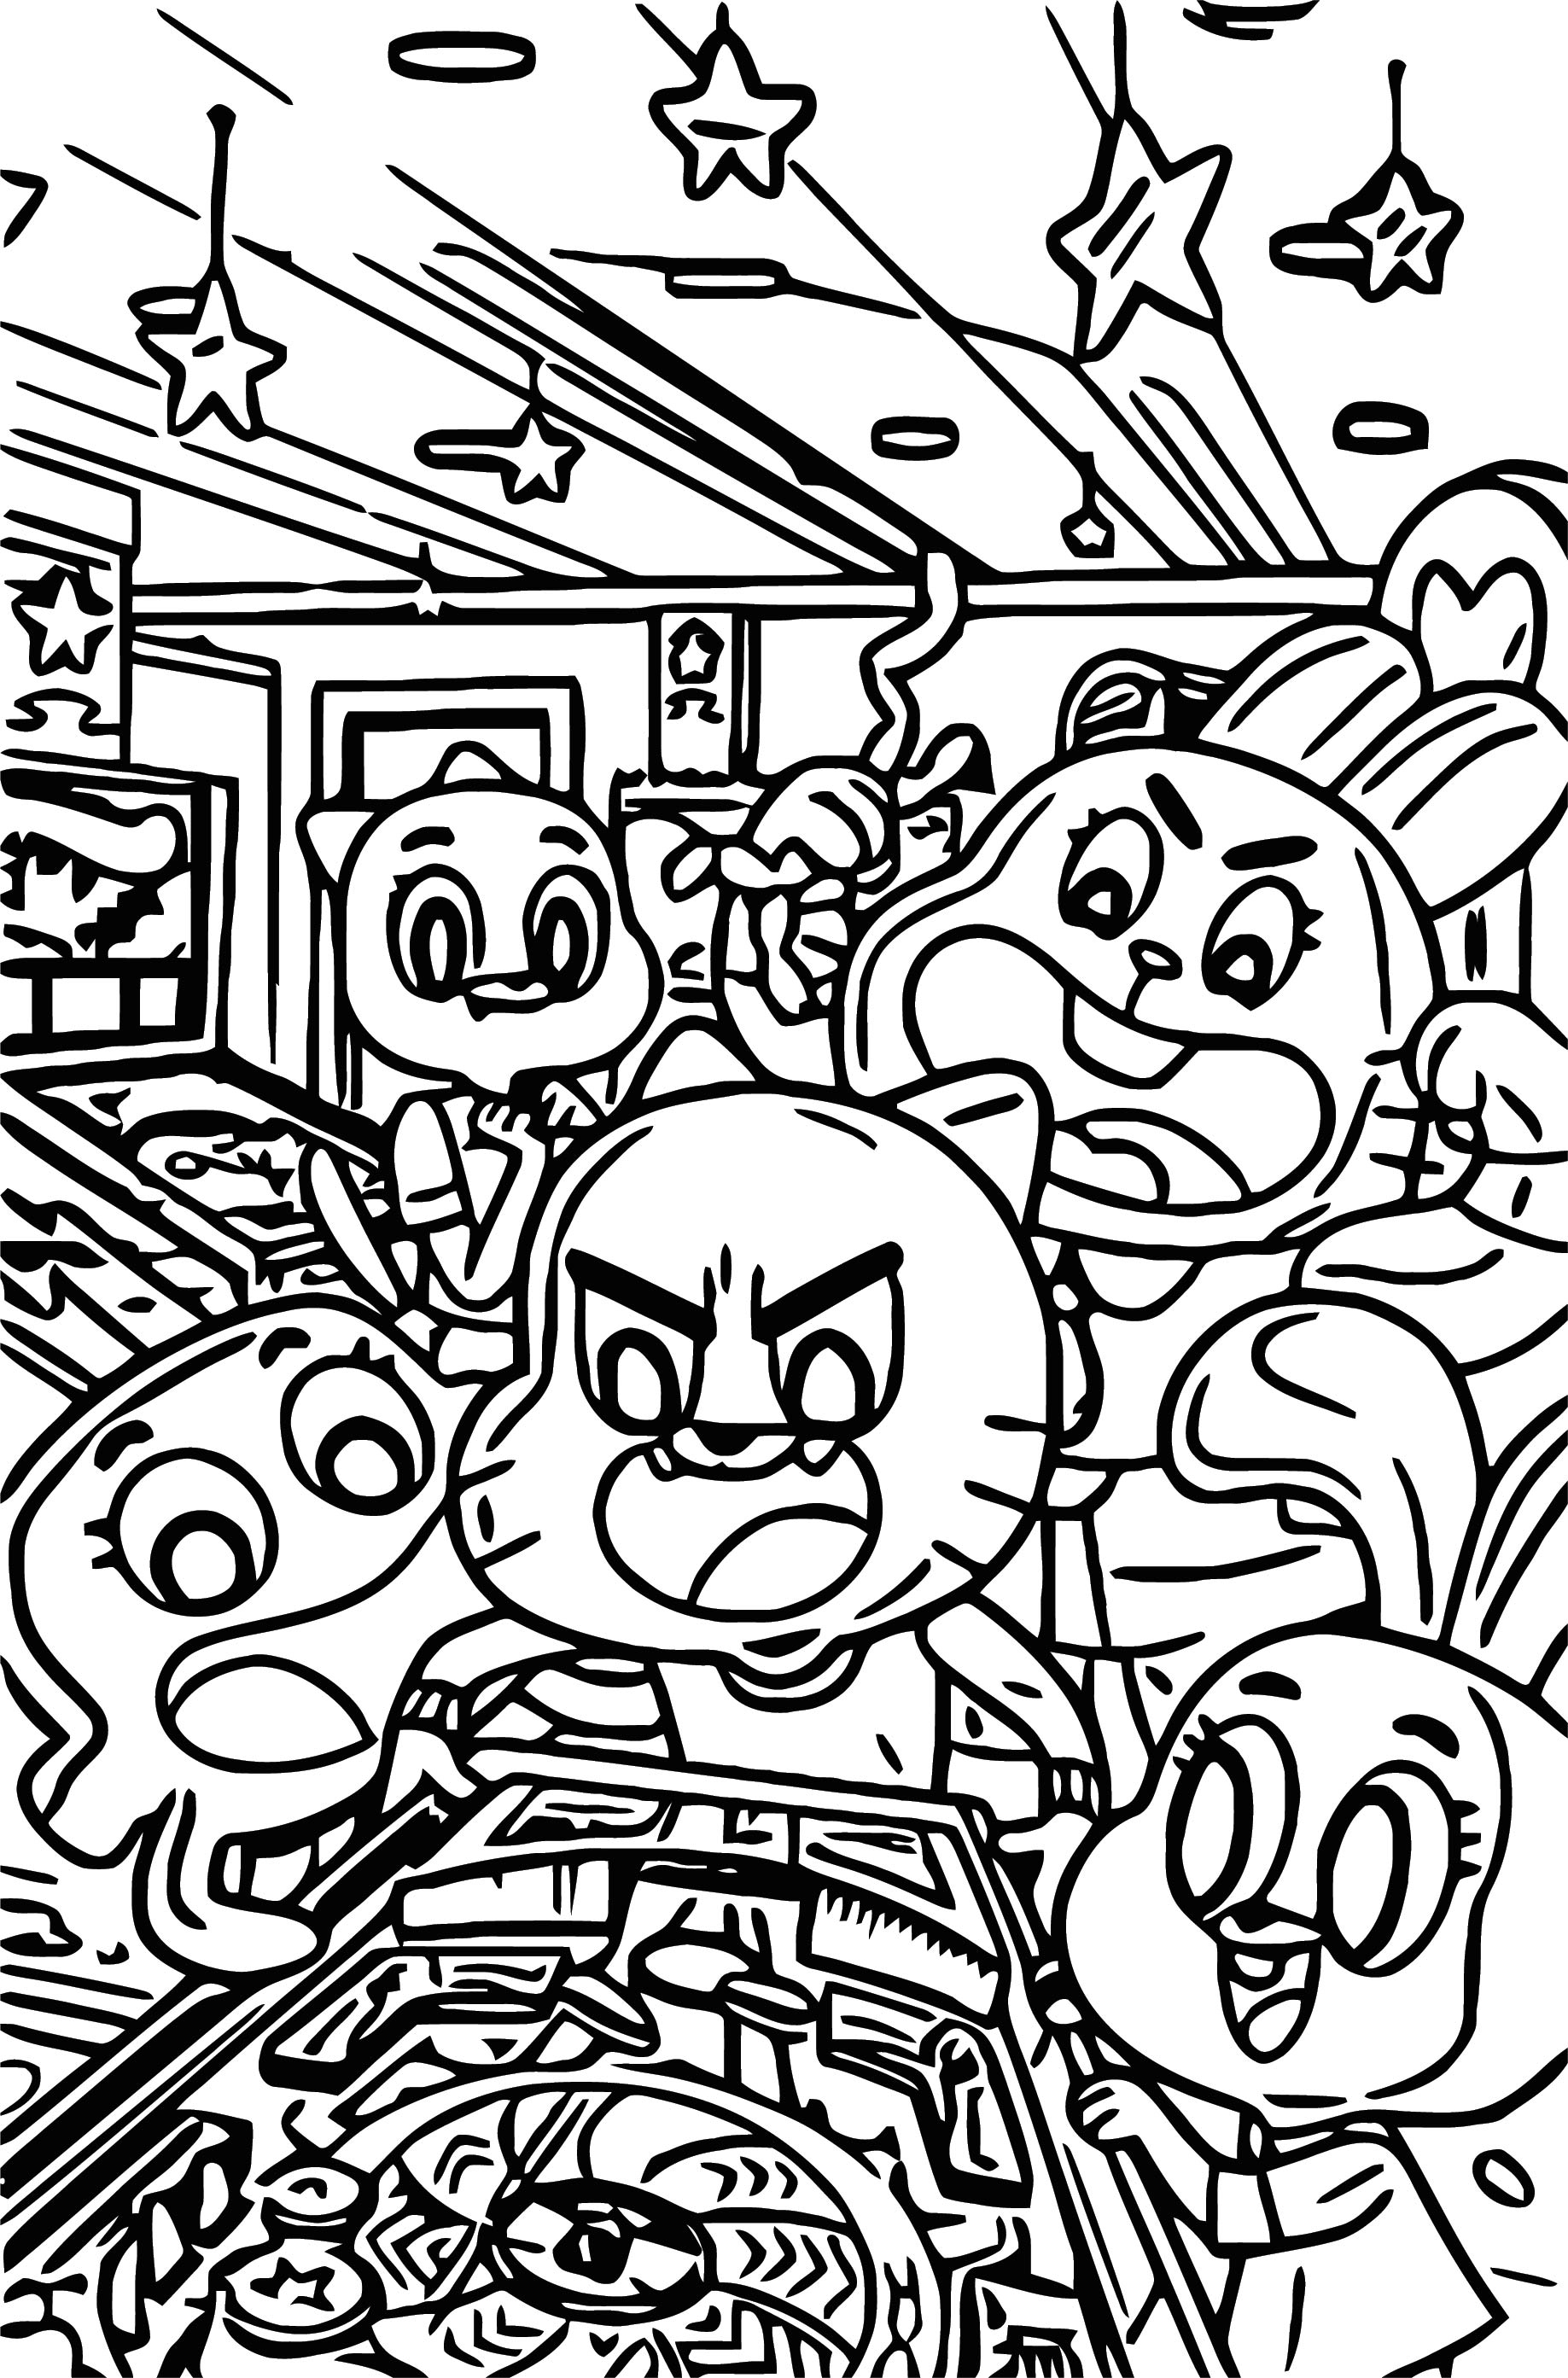 Kaboom Gumball Coloring Page